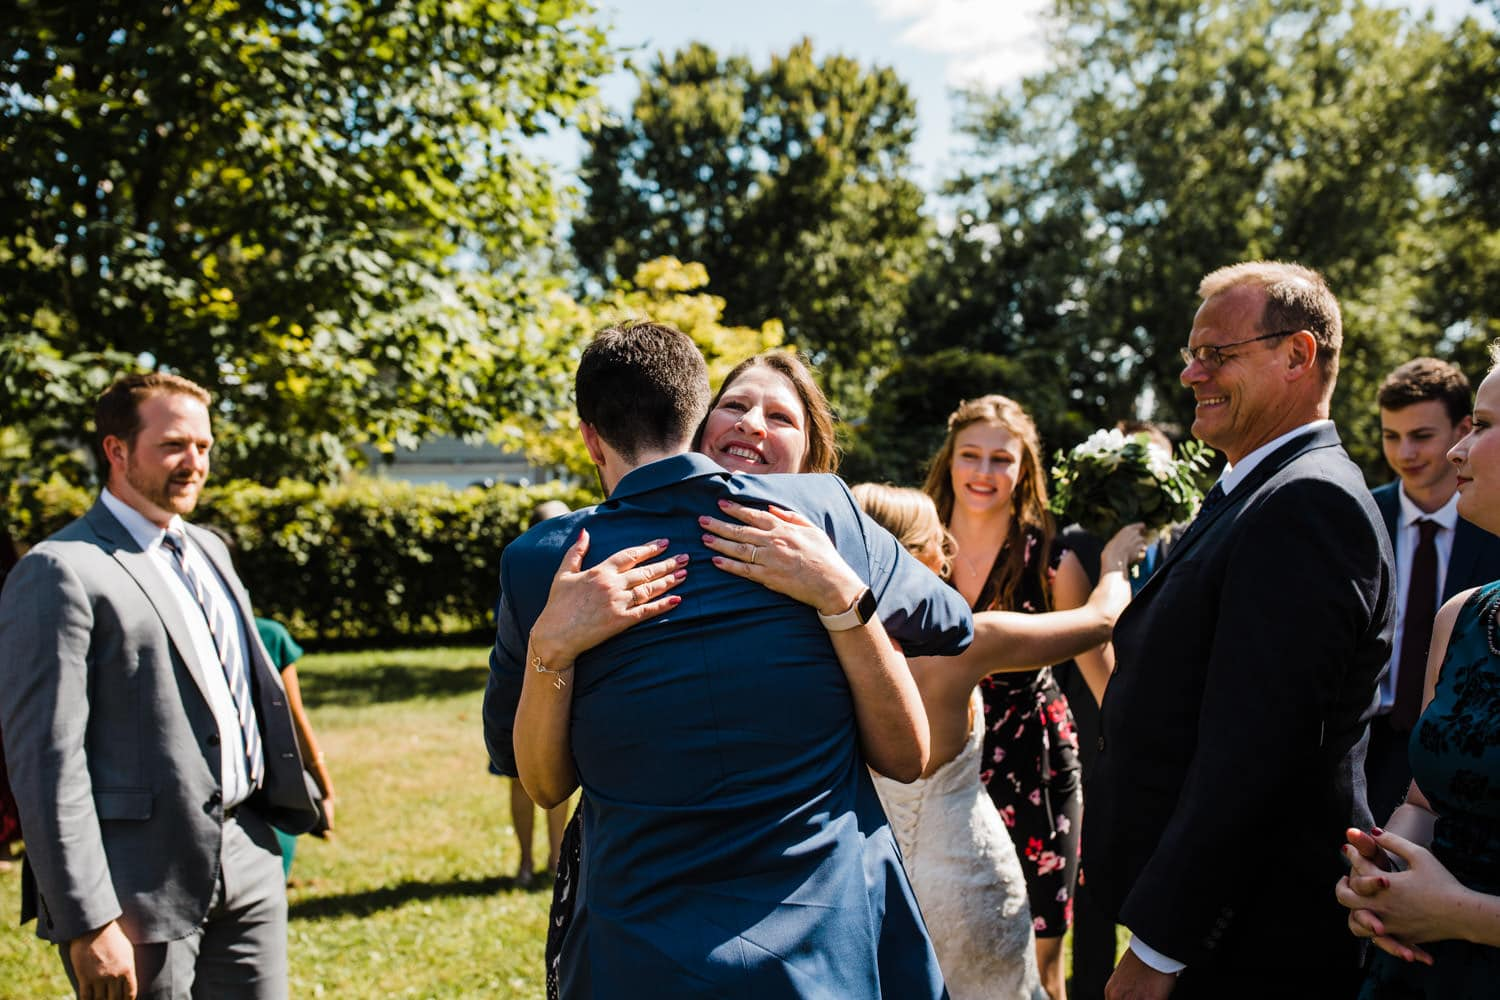 guests hug groom after outdoor wedding ceremony